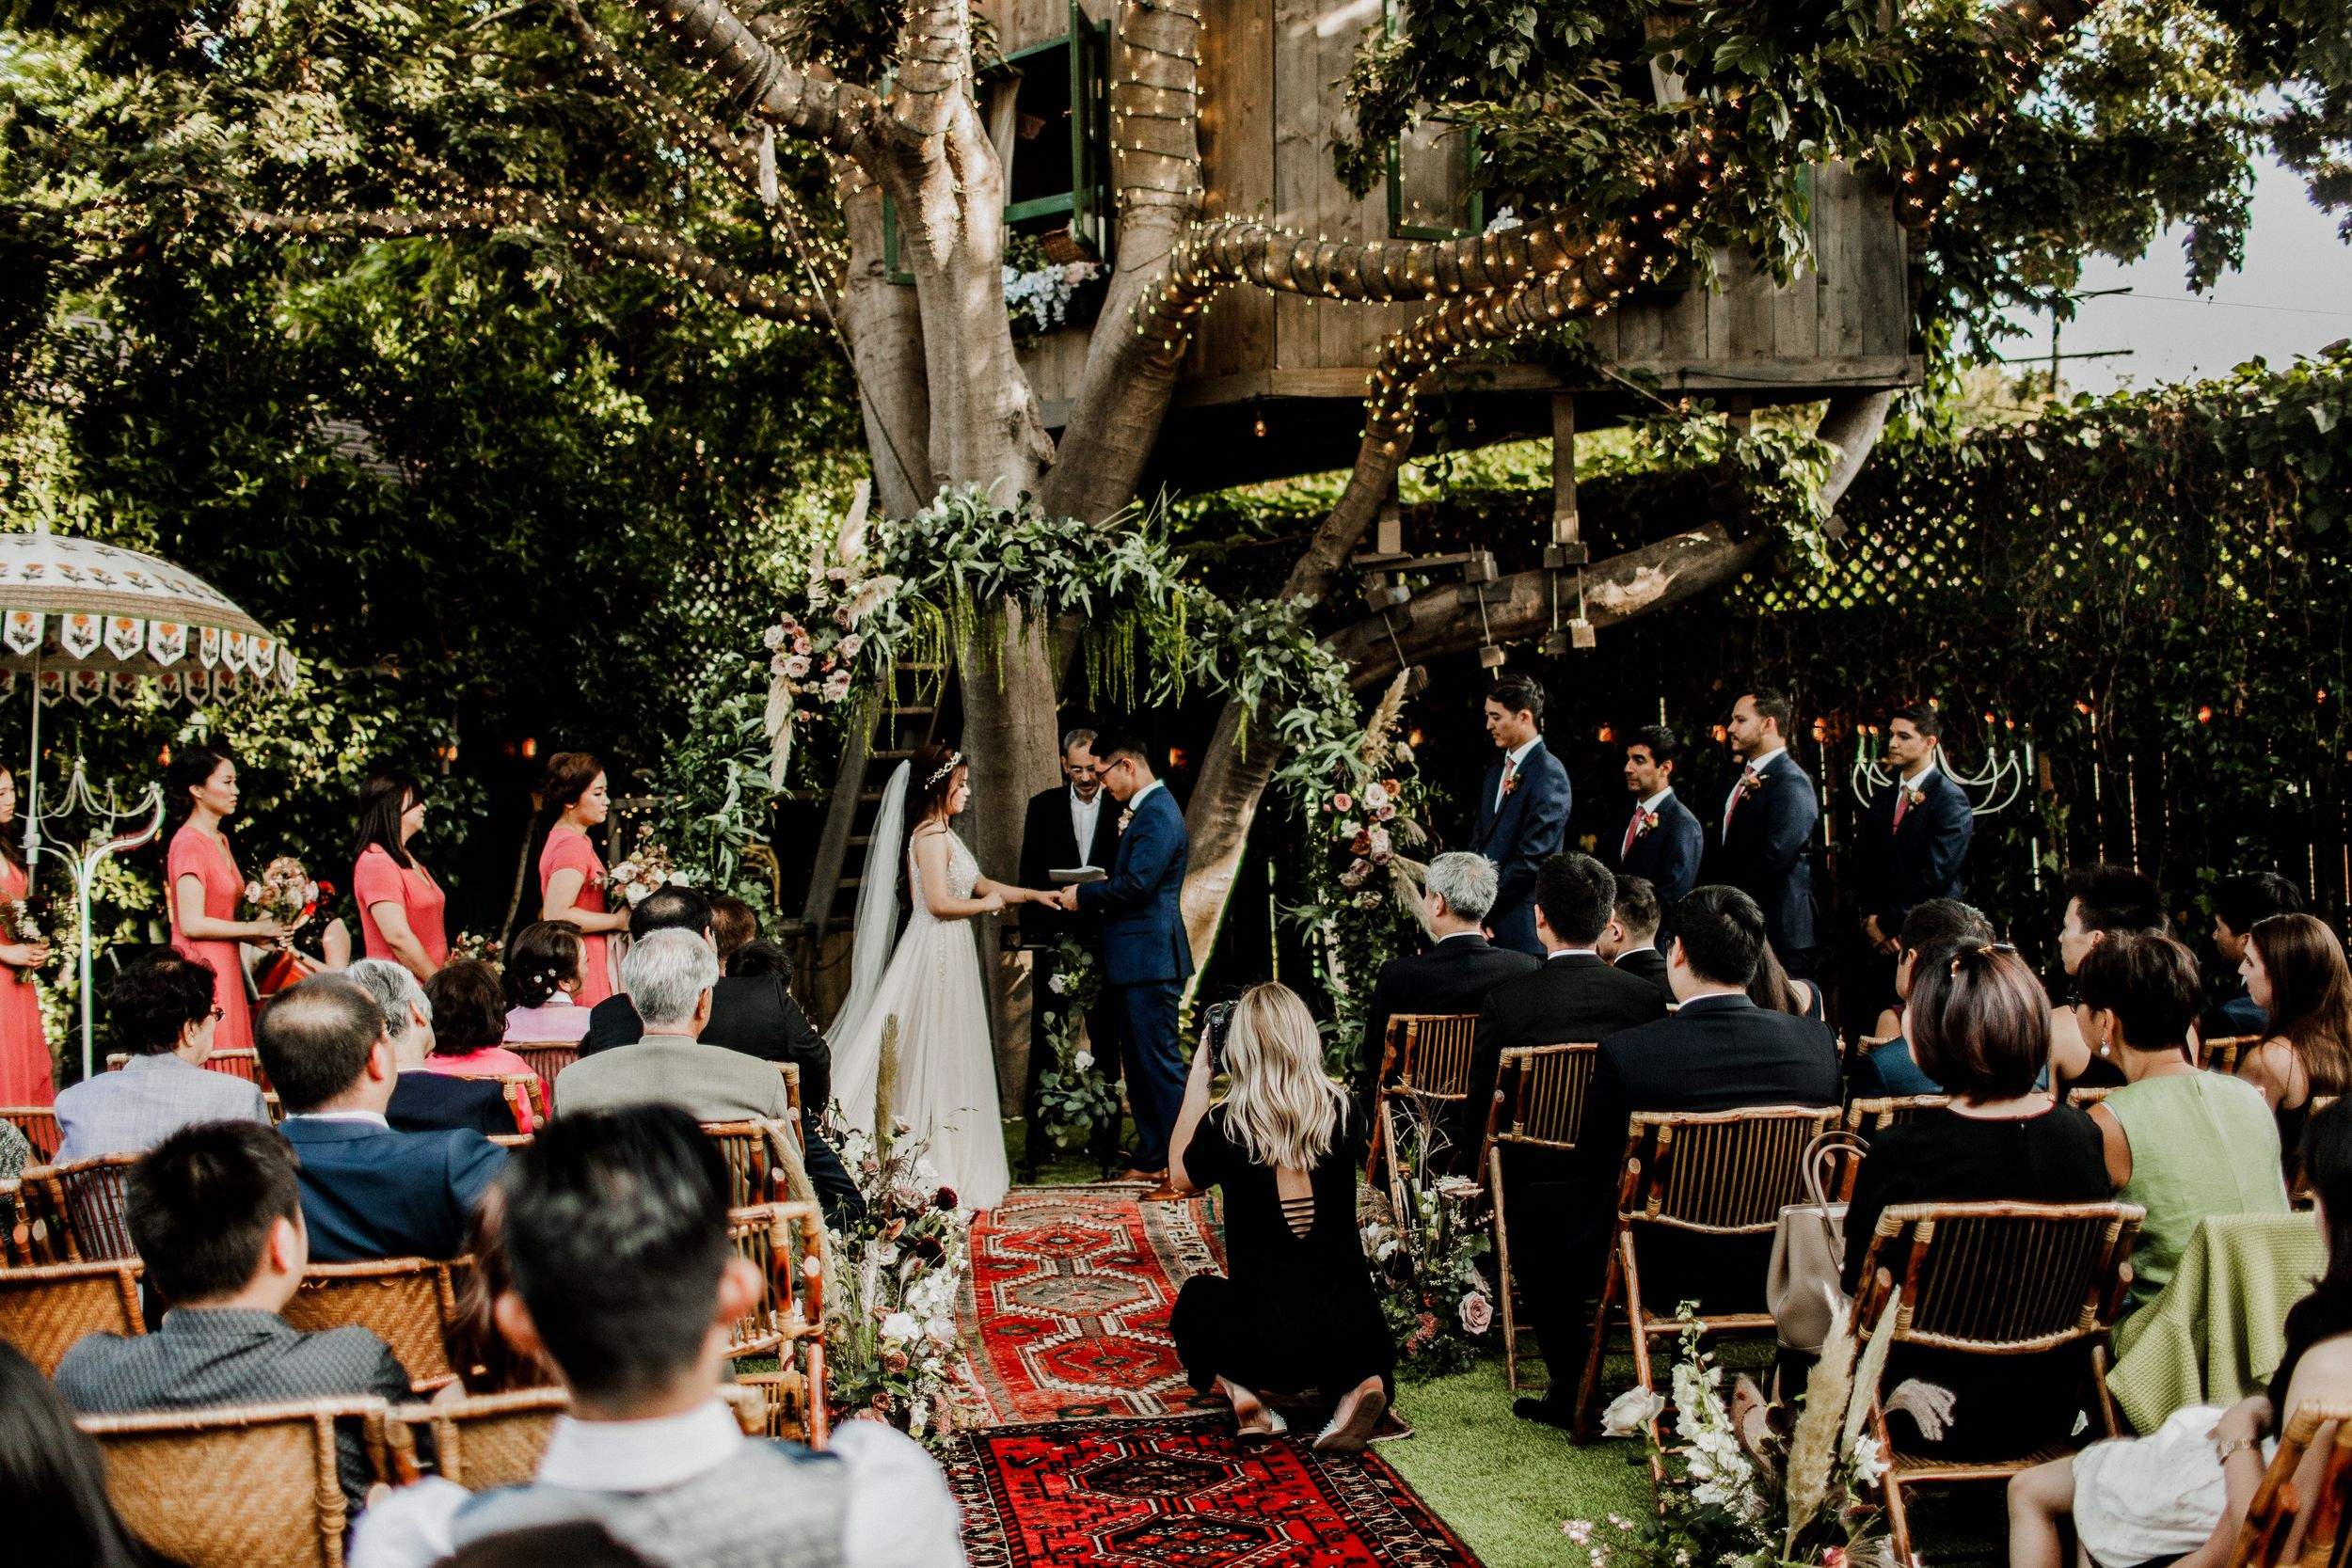 portrait behind the scenes of videography at wedding ceremony with treehouse background